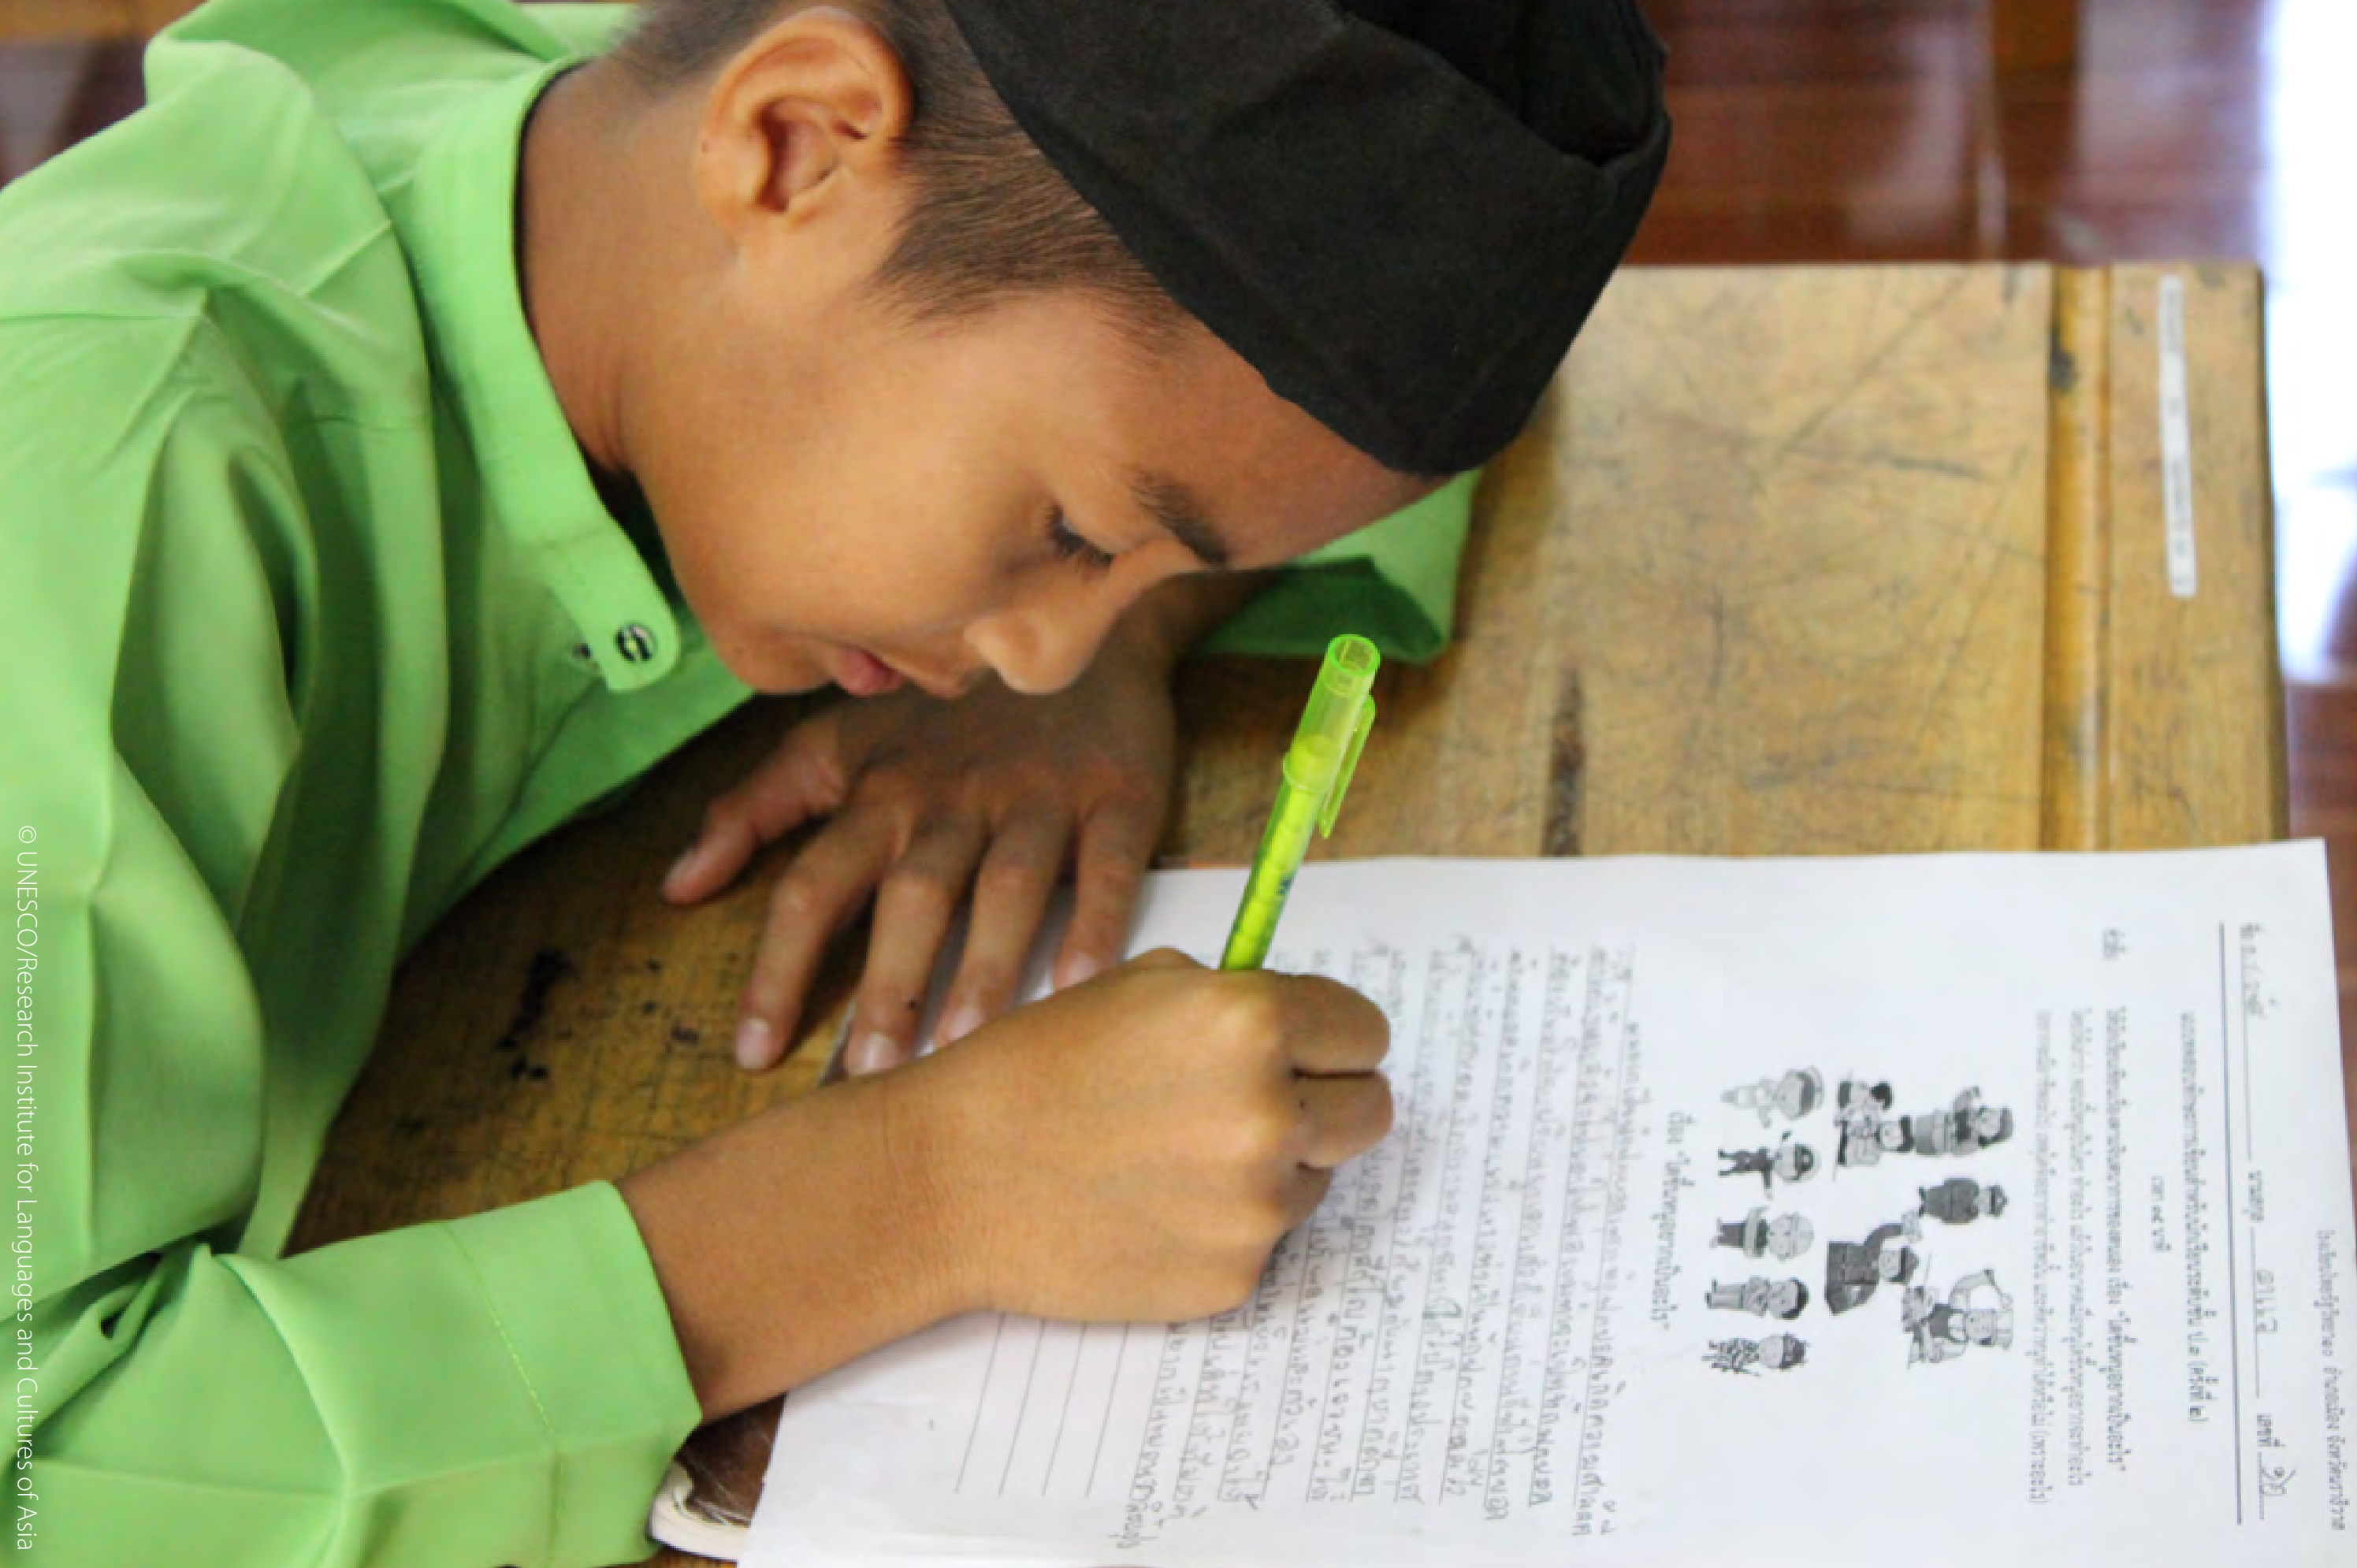 Student at school as part of the Patani Malay-Thai Bi-Multilingual Education Project conducted by the Research Institute for Language and Cultures of Asia of the Mahidol University in southern Thailand, 2016. Photo courtesy of UNESCO.